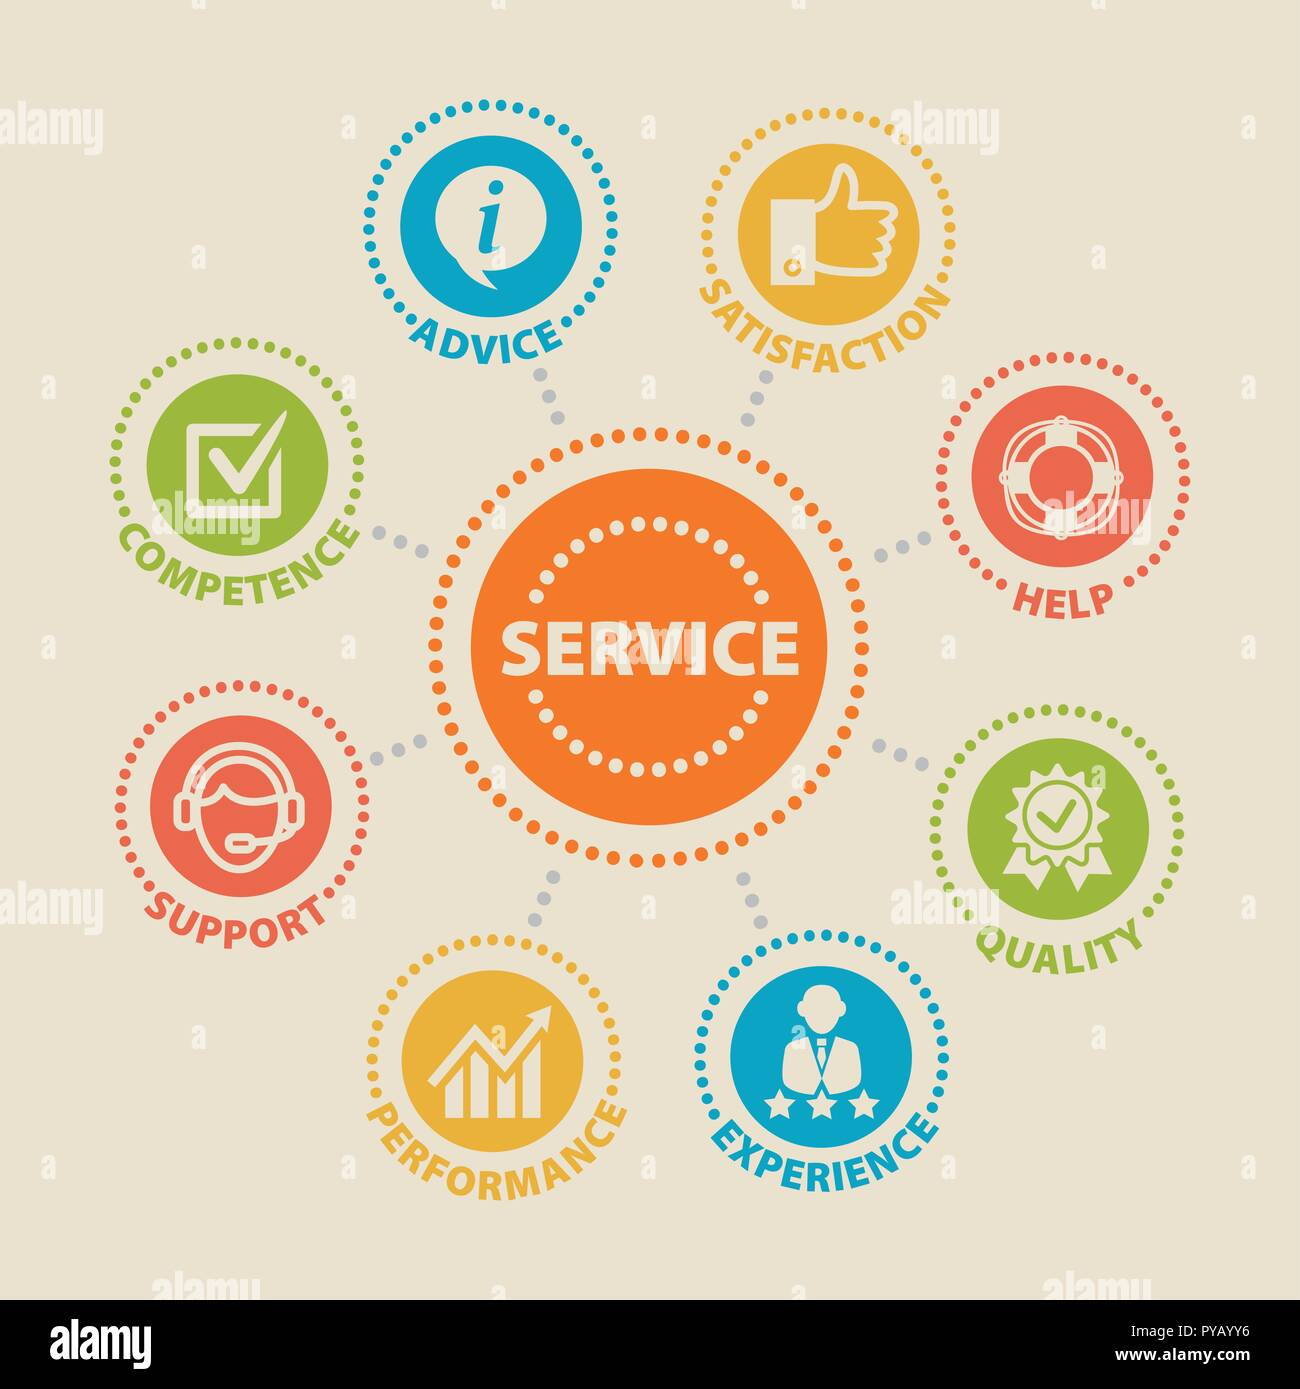 SERVICE Concept with icons and signs - Stock Vector